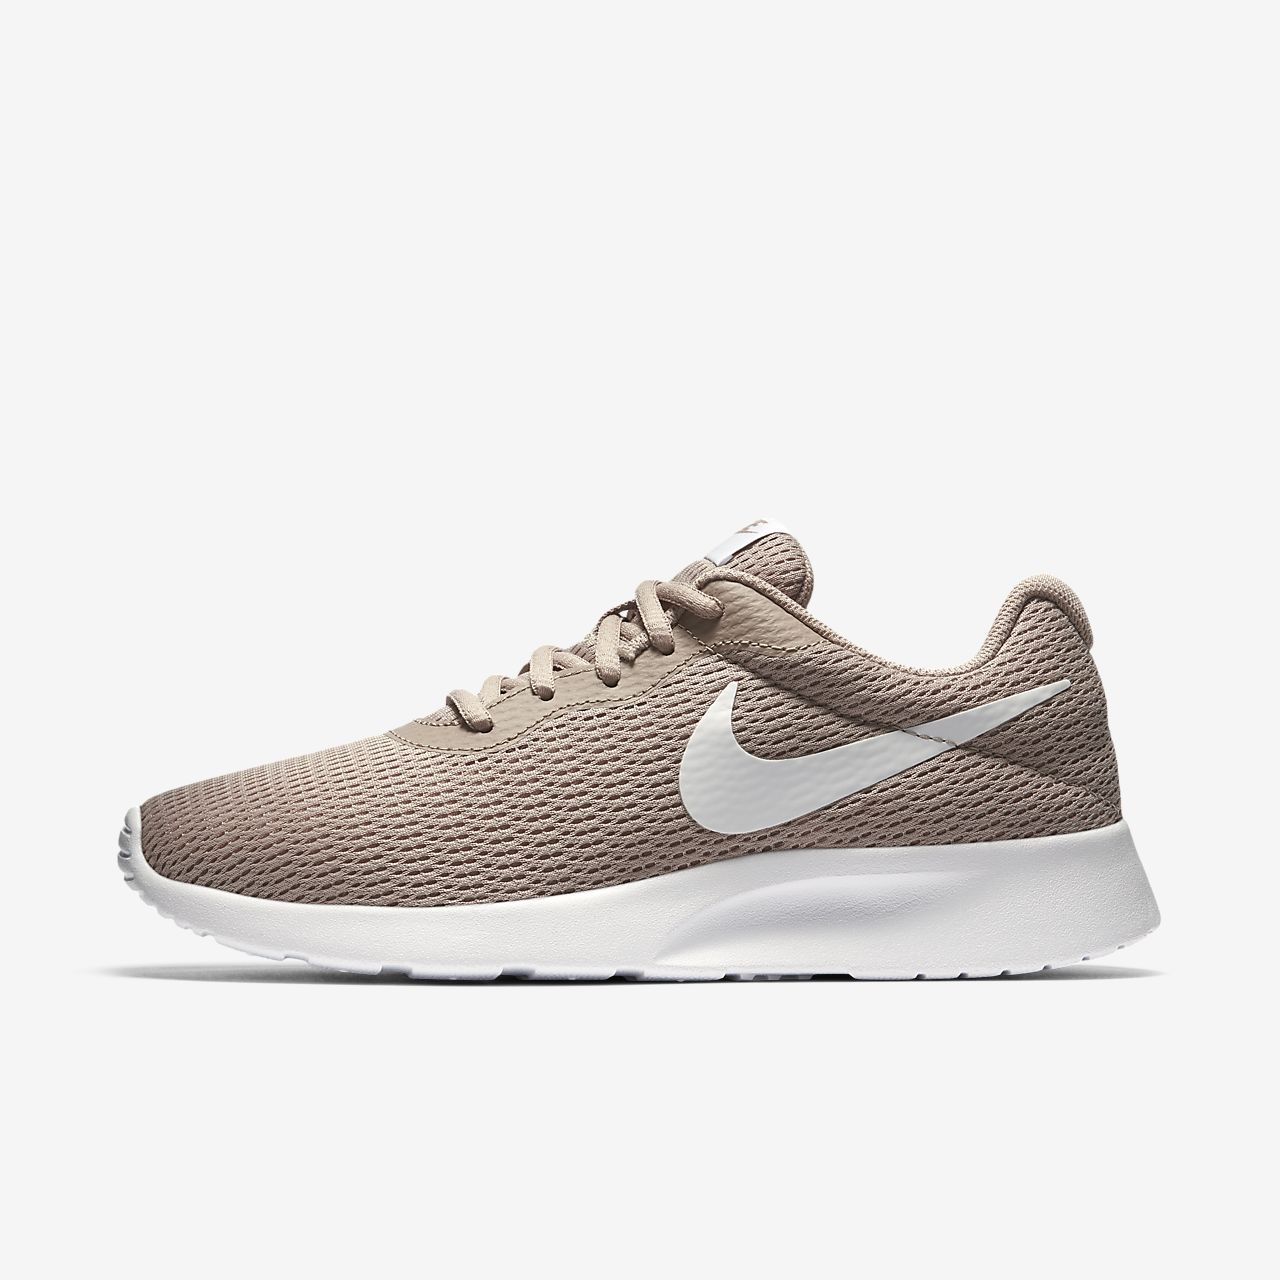 nike tanjun racer women's sneakers nz